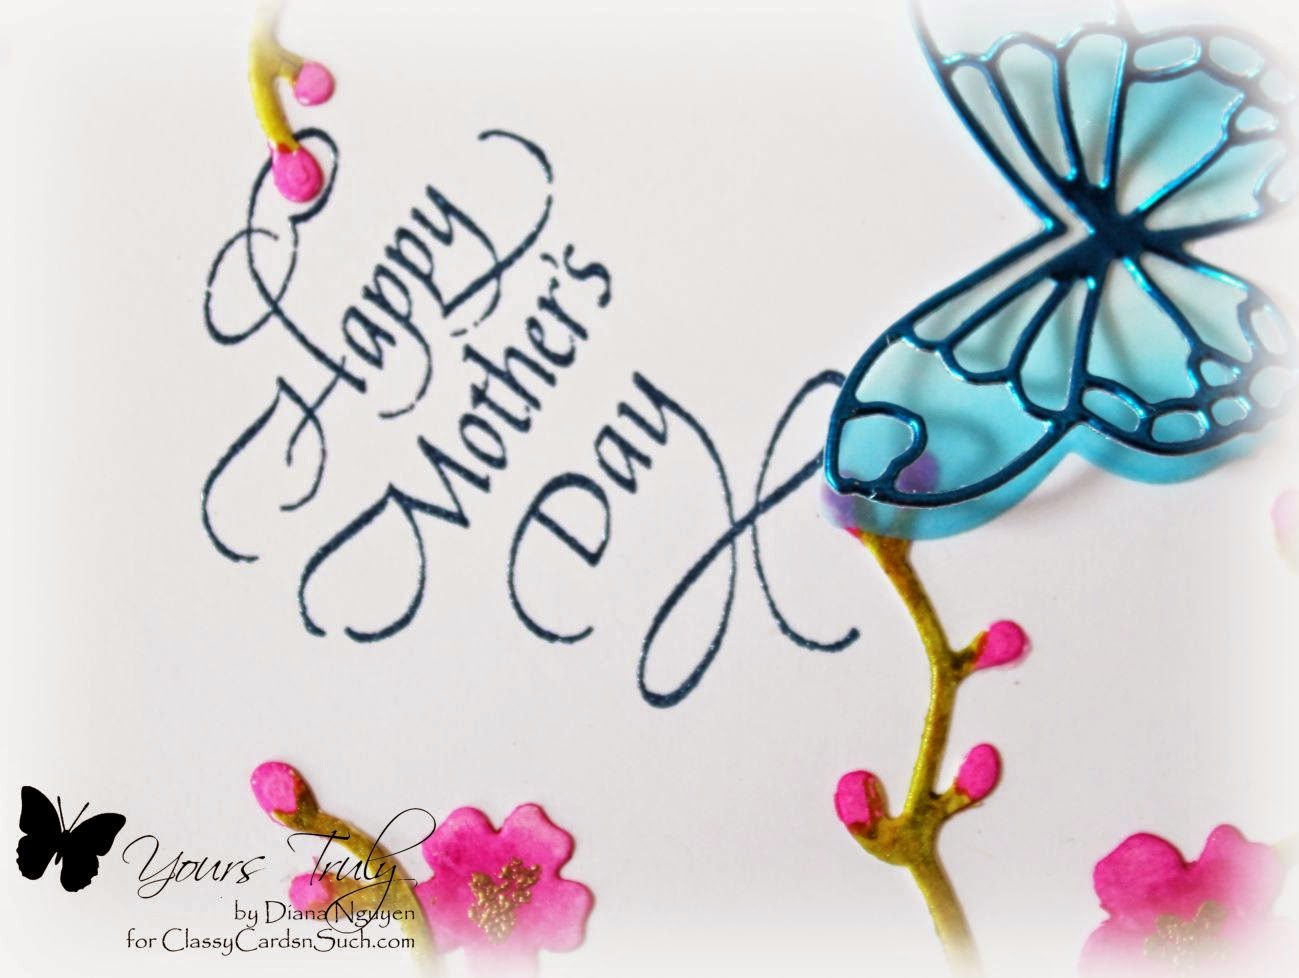 Diana Nguyen, Poppystamps, Darice, Quietfire Design, Mother's Day, butterflies, cherry blossom